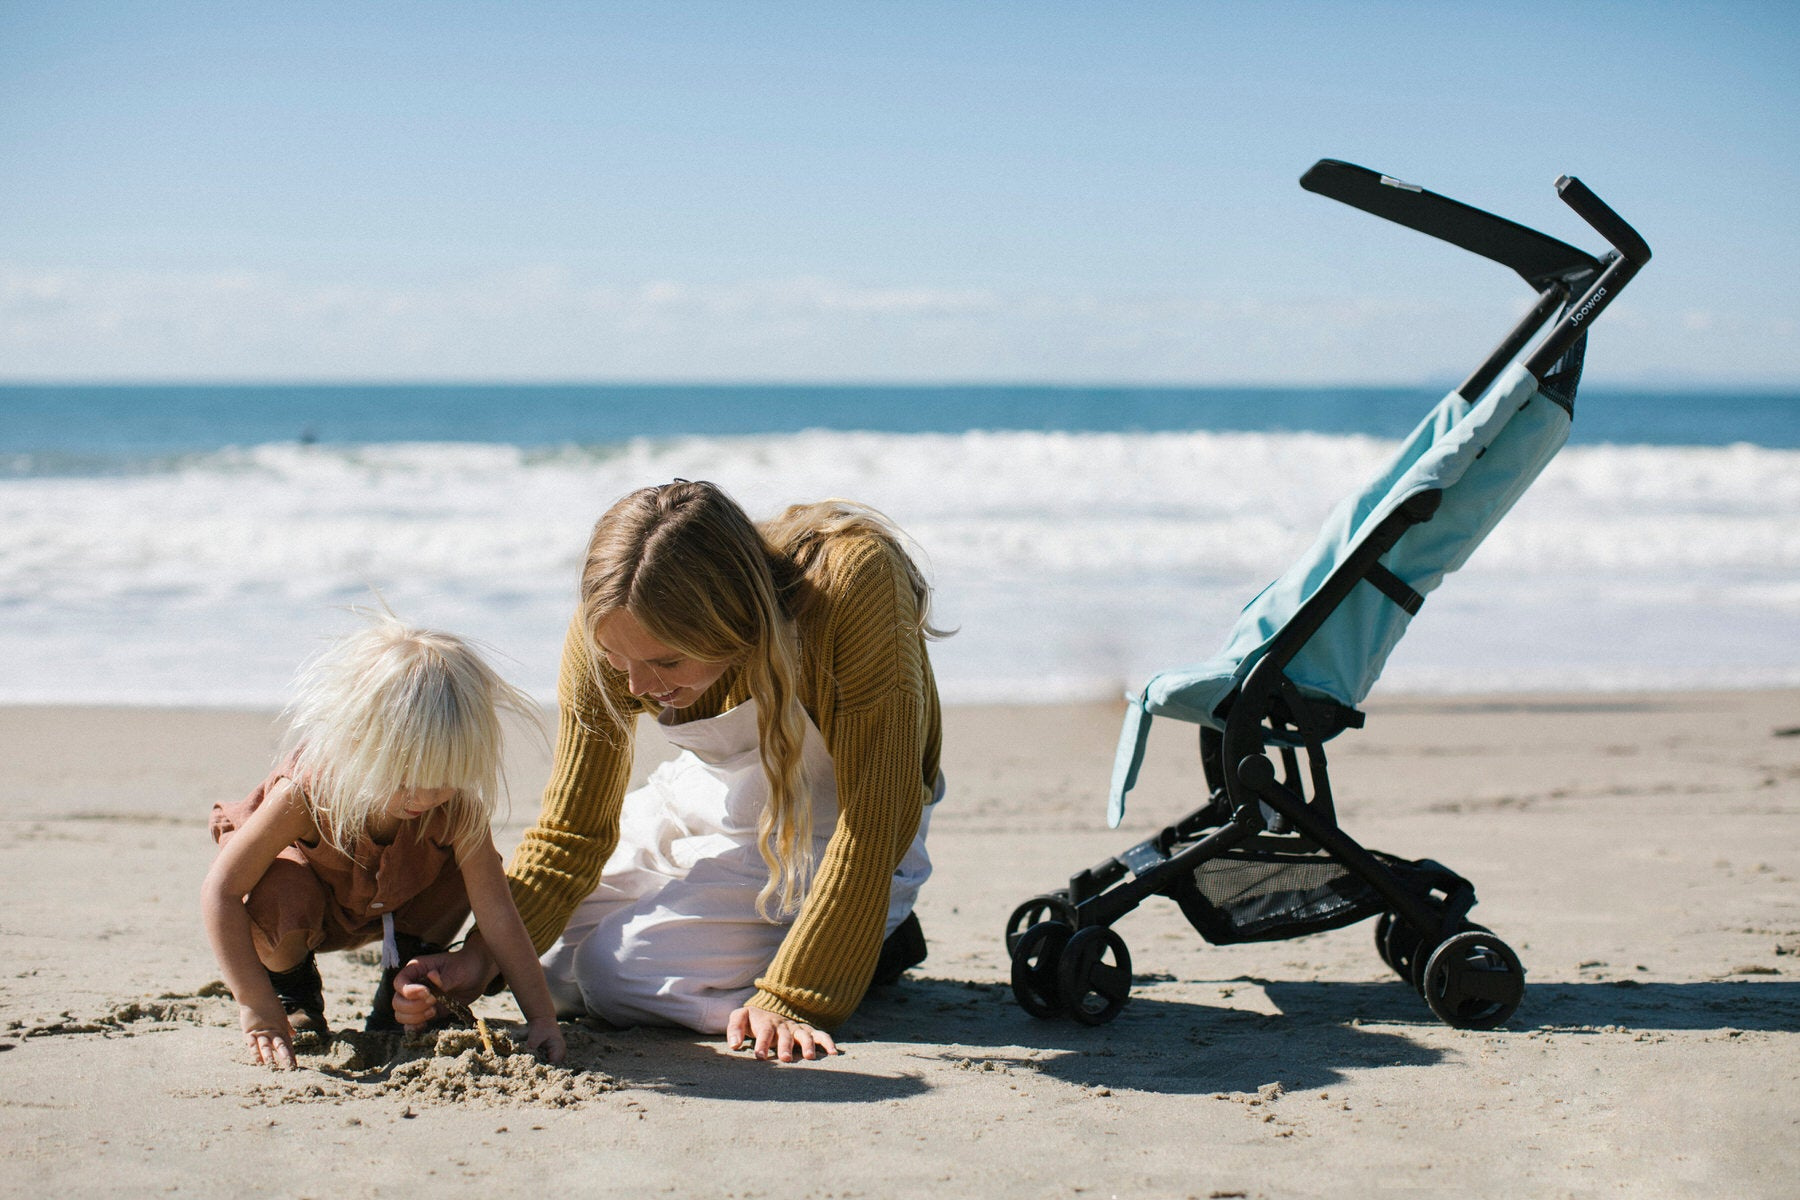 Leah and daughter play in the sand